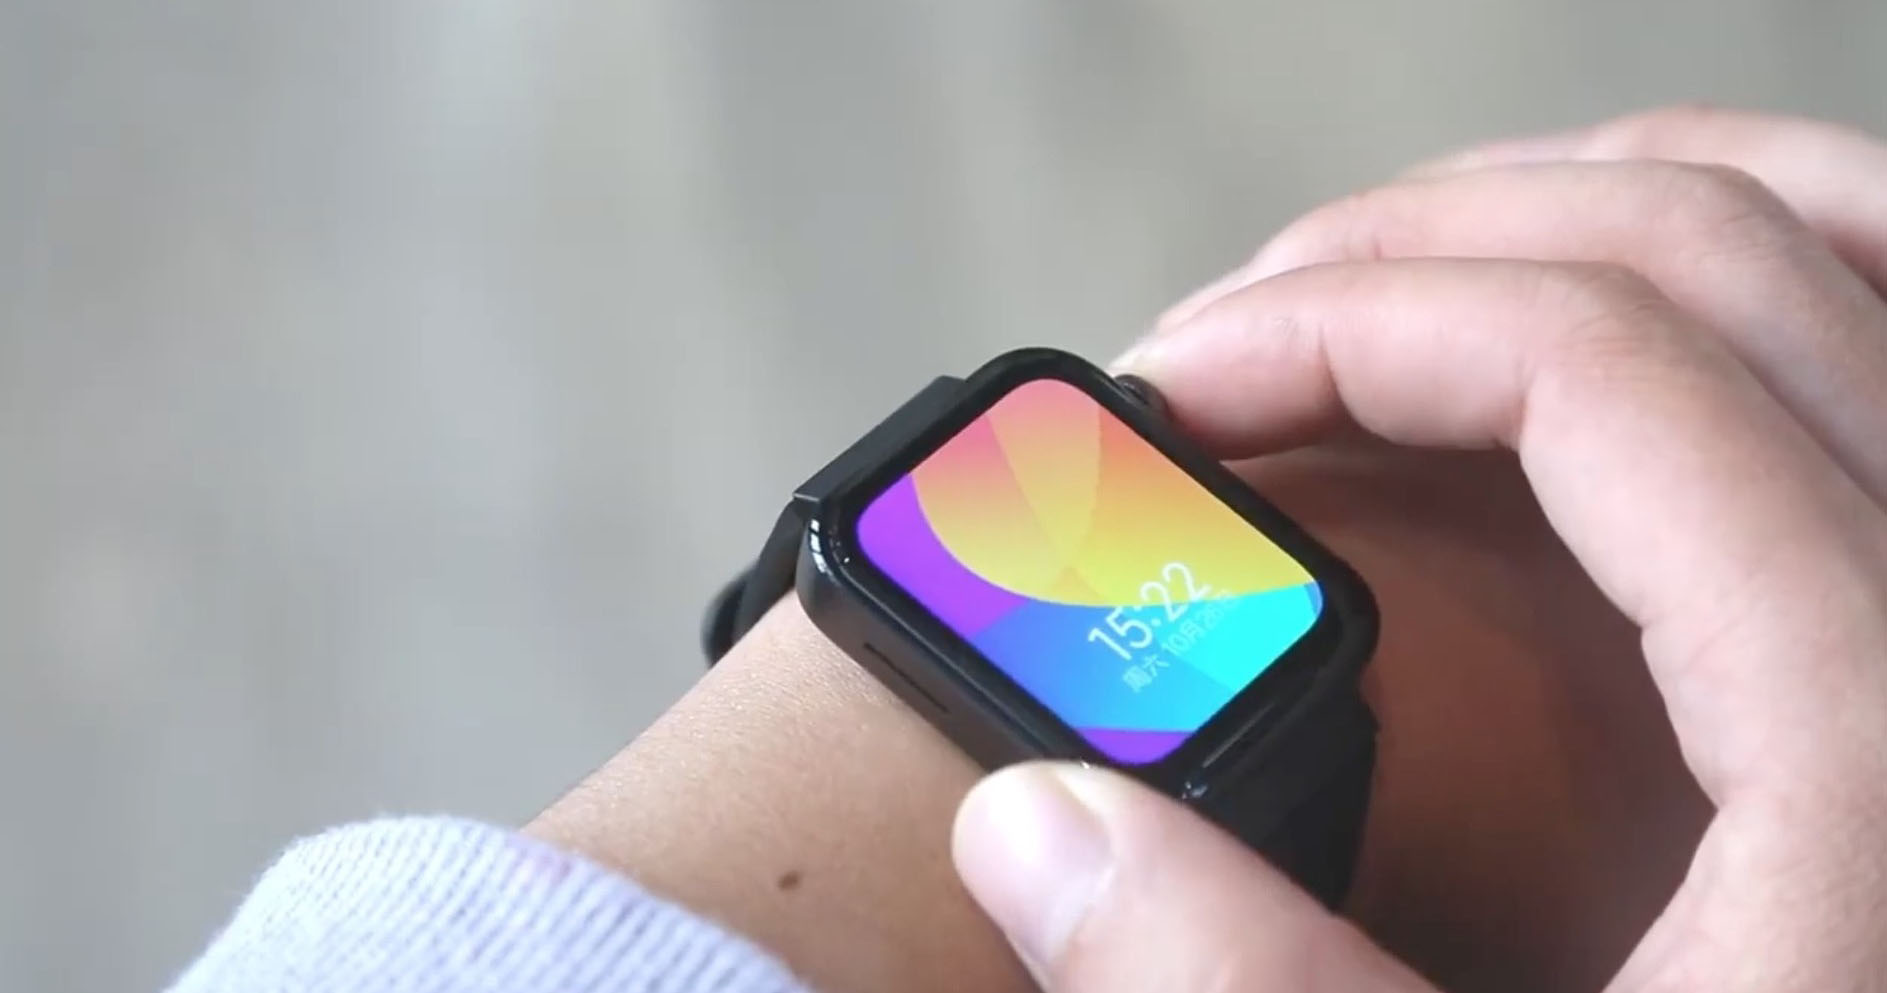 Sforum - The latest technology information page Xiaomi-Smartwatch-Hands-On-face [Video] On the hands of Xiaomi Mi Watch before the launch date